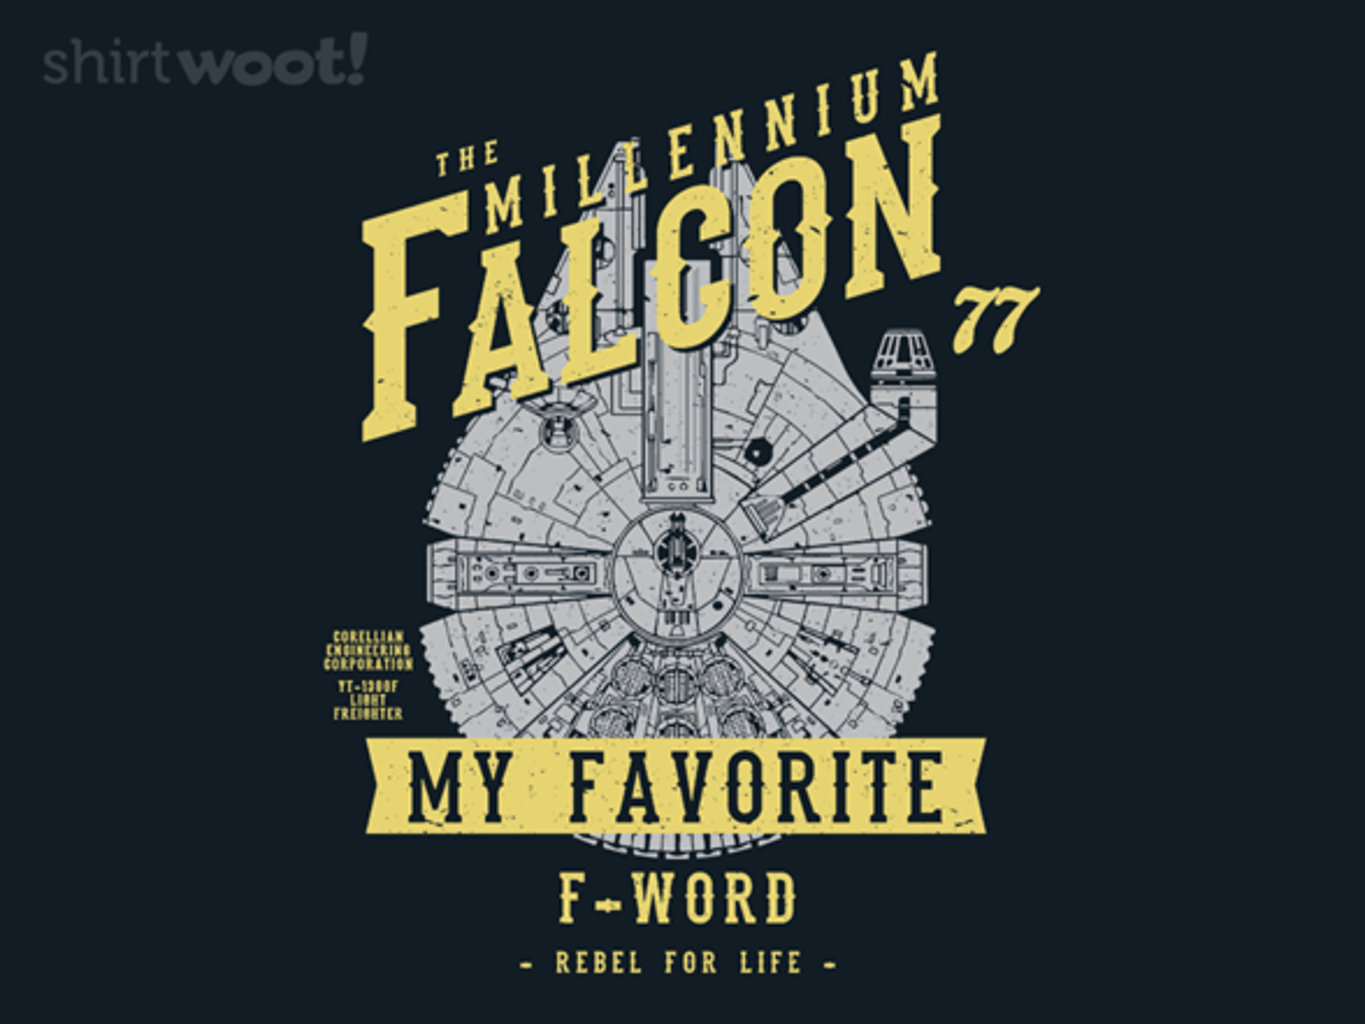 Woot!: The Falcon